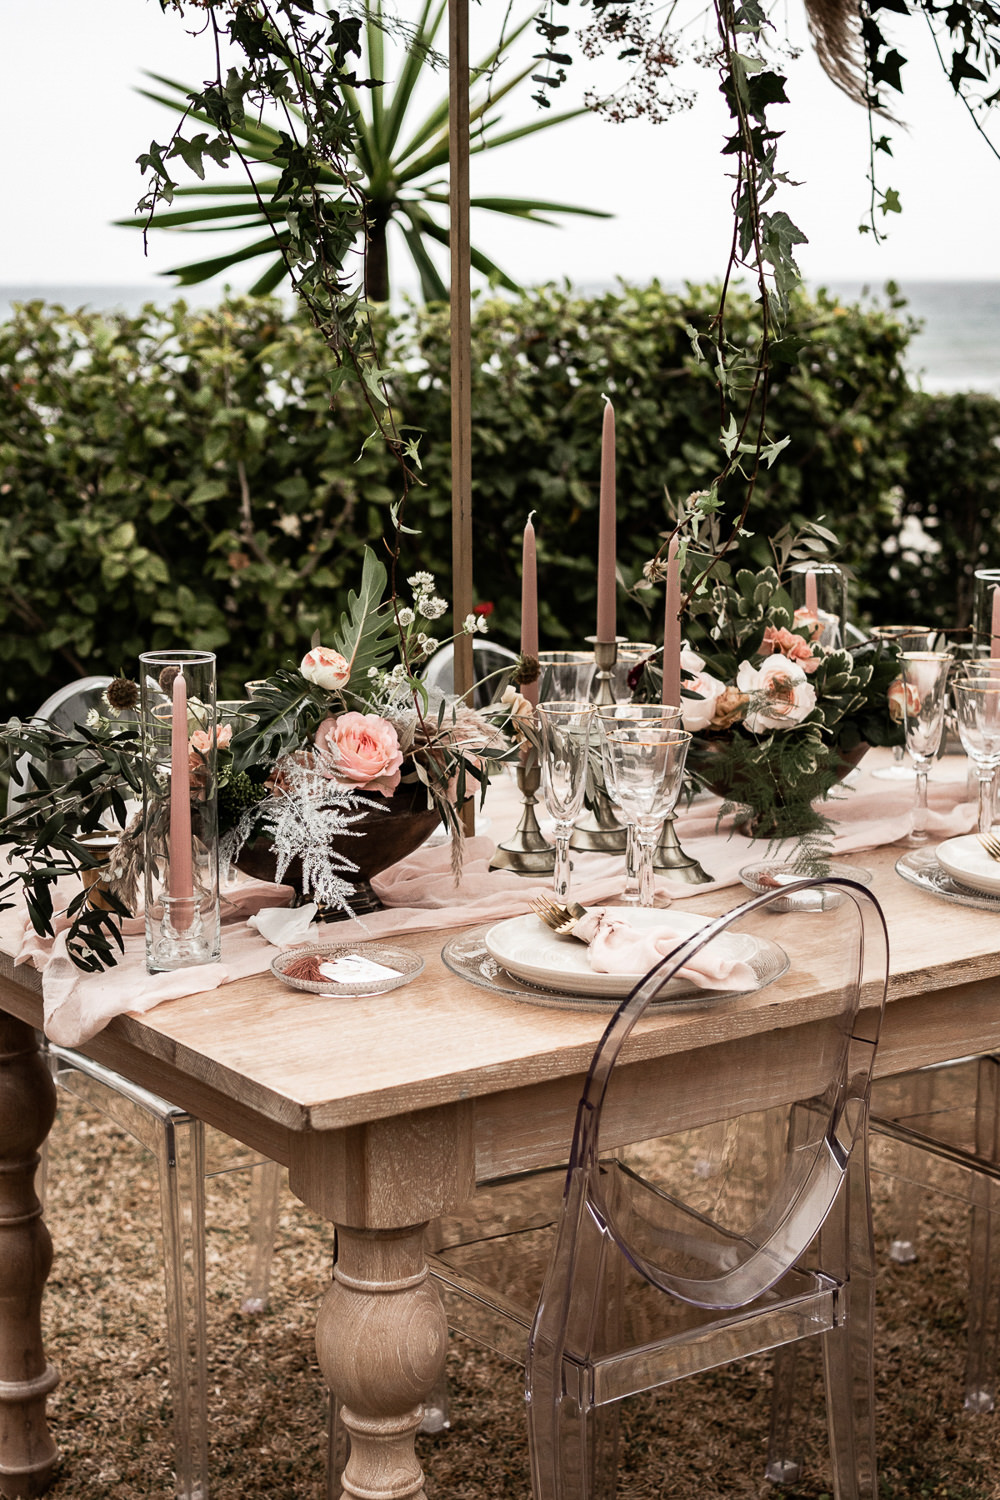 Table Tablescape Flowers Candles Decor Ghost Chairs Suspended Flowers Greenery Hanging Marbella Elopement Wedding Nora Photography